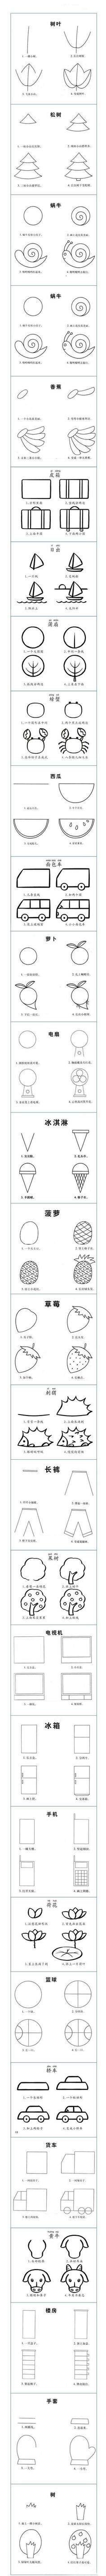 How to draw...useful for Pictionary and Tetetrations games.